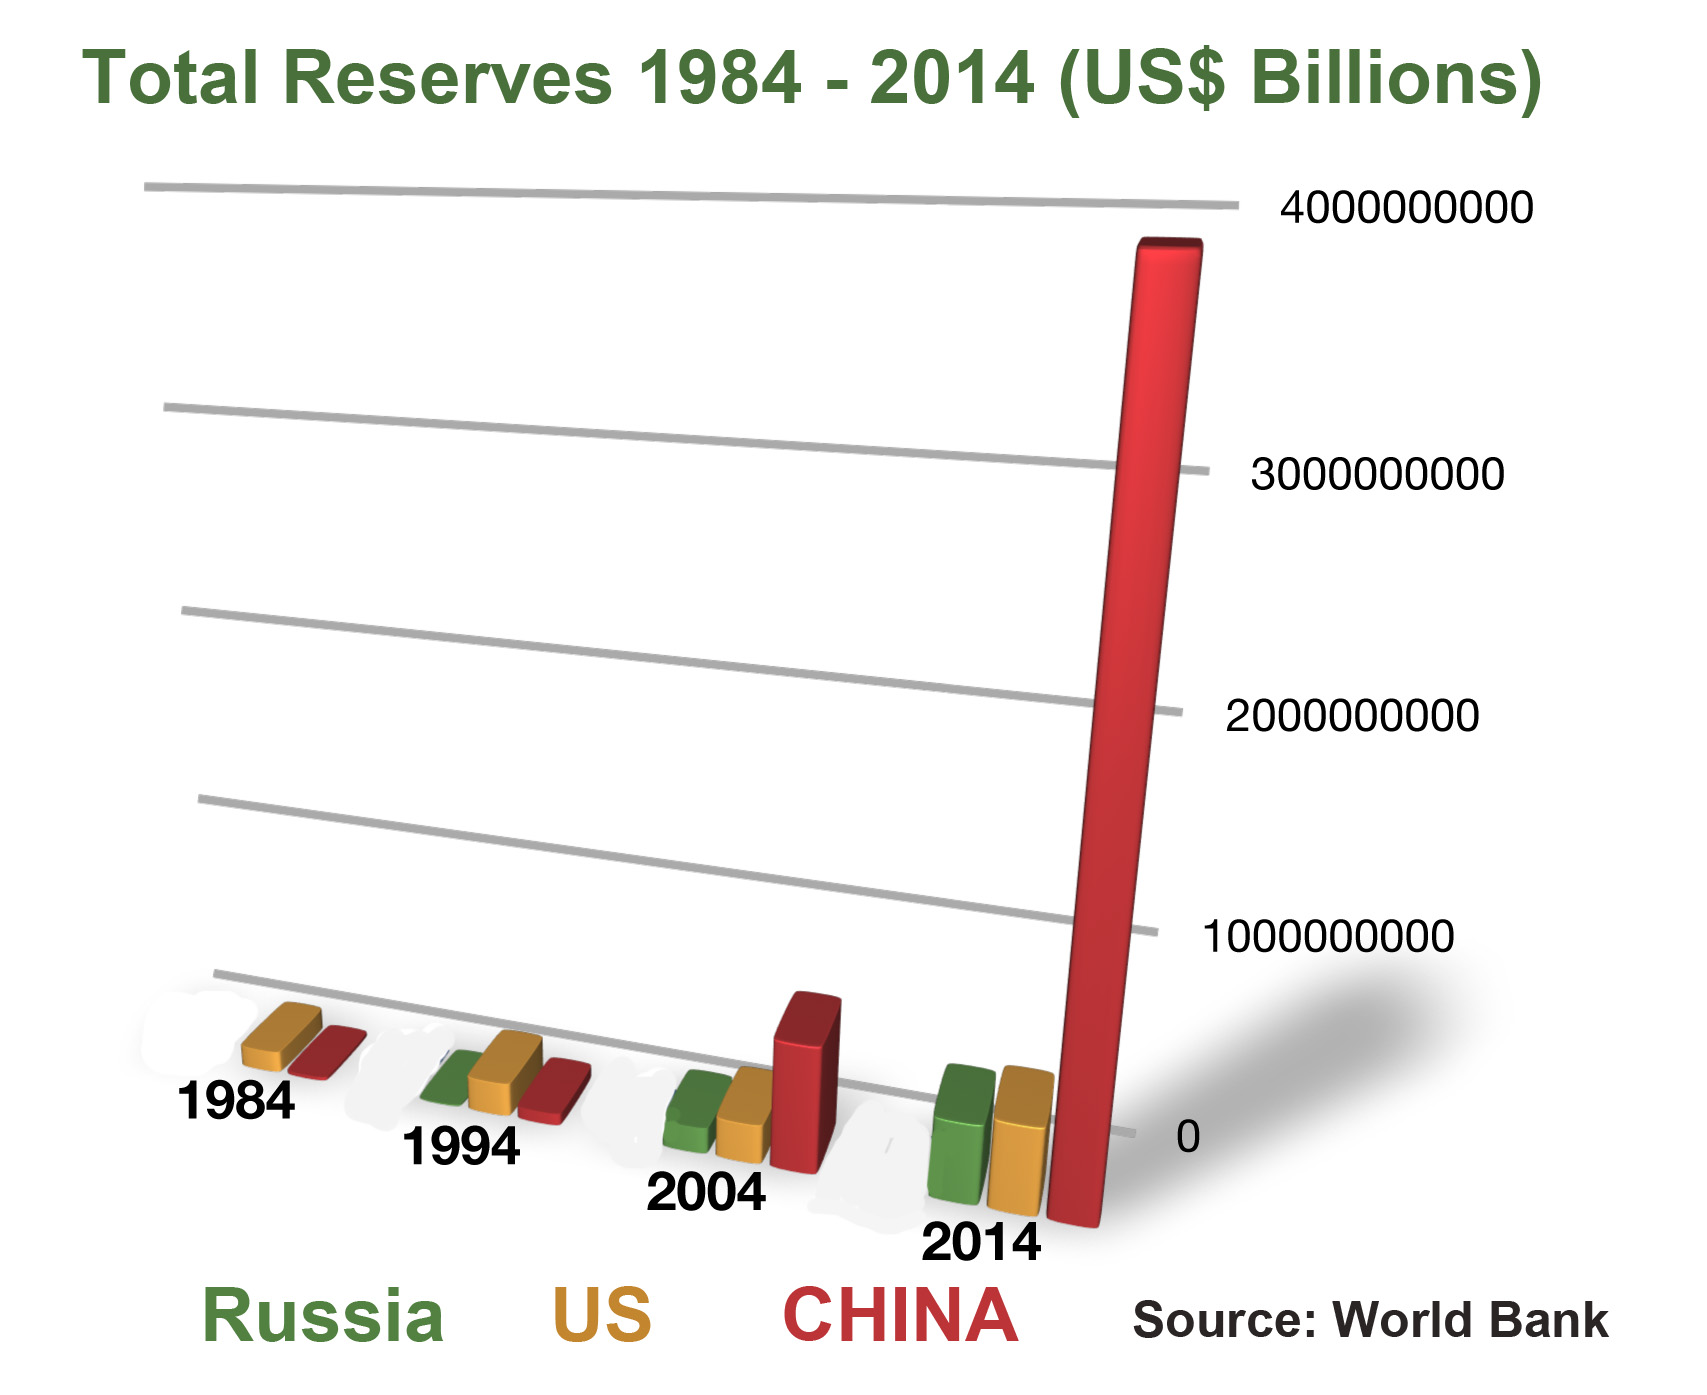 Total Reserves 1984-2014